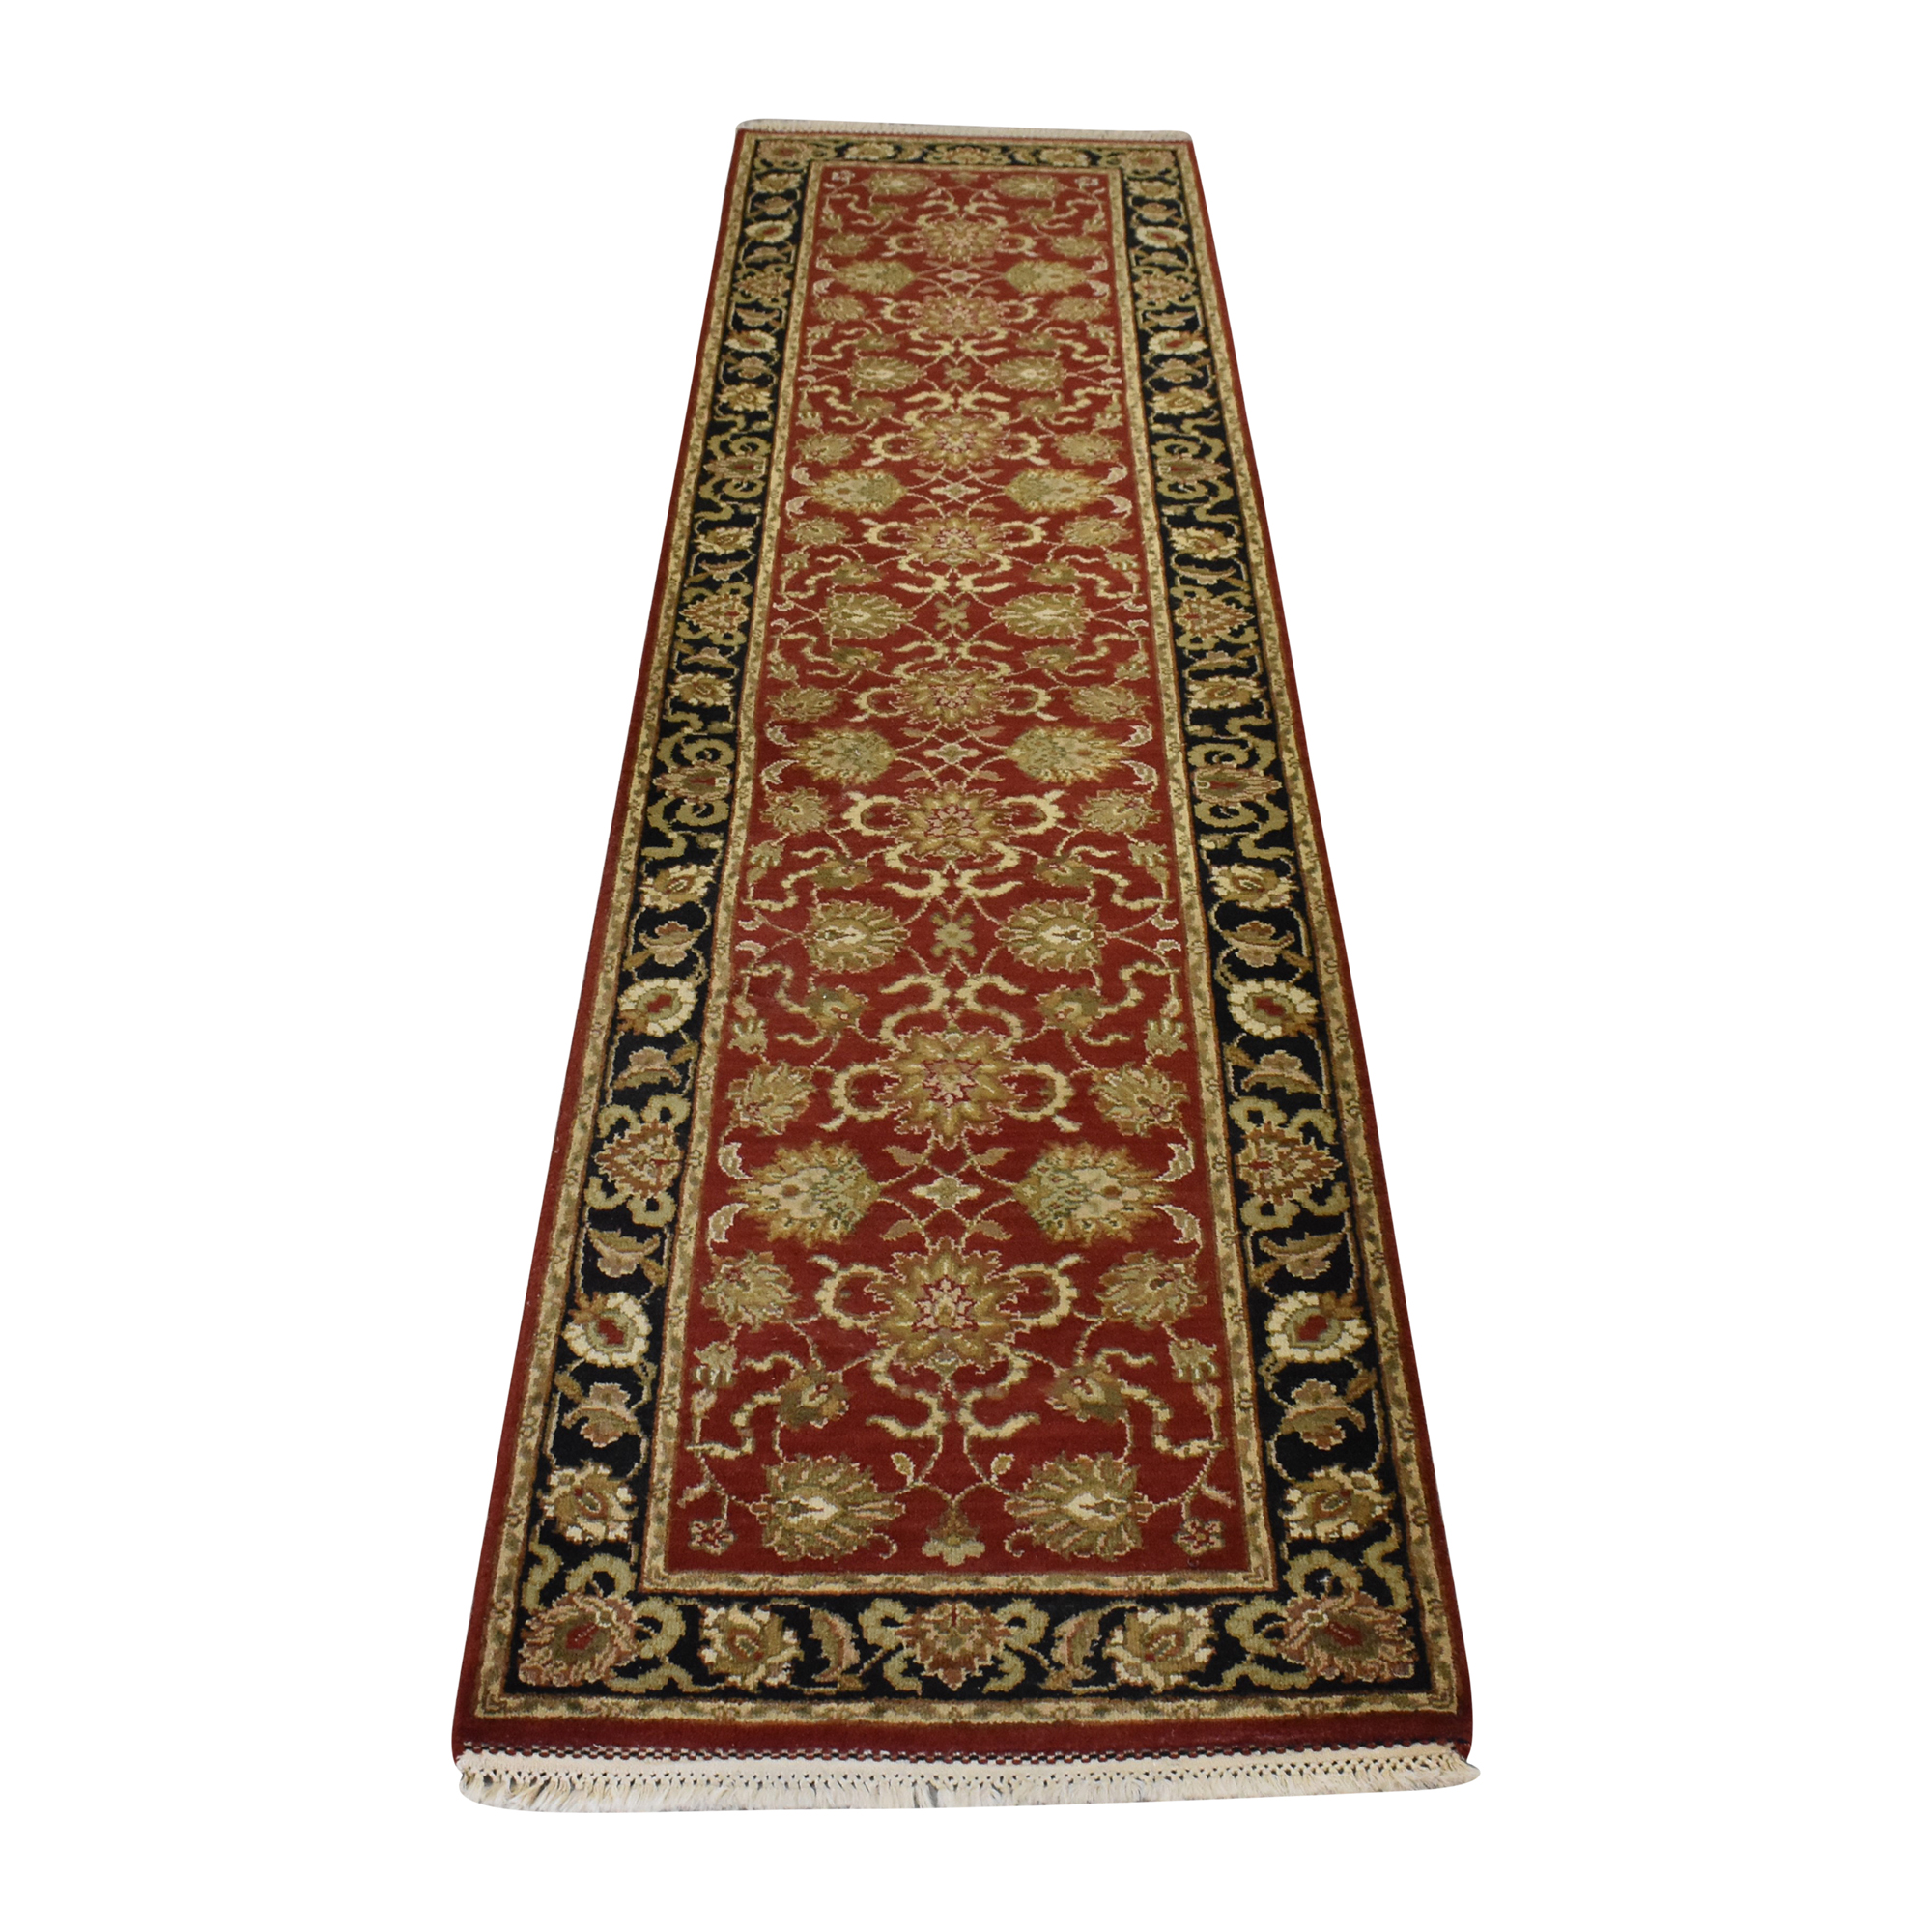 Home Decorators Collection Home Decorators Collection Santana Runner Decor